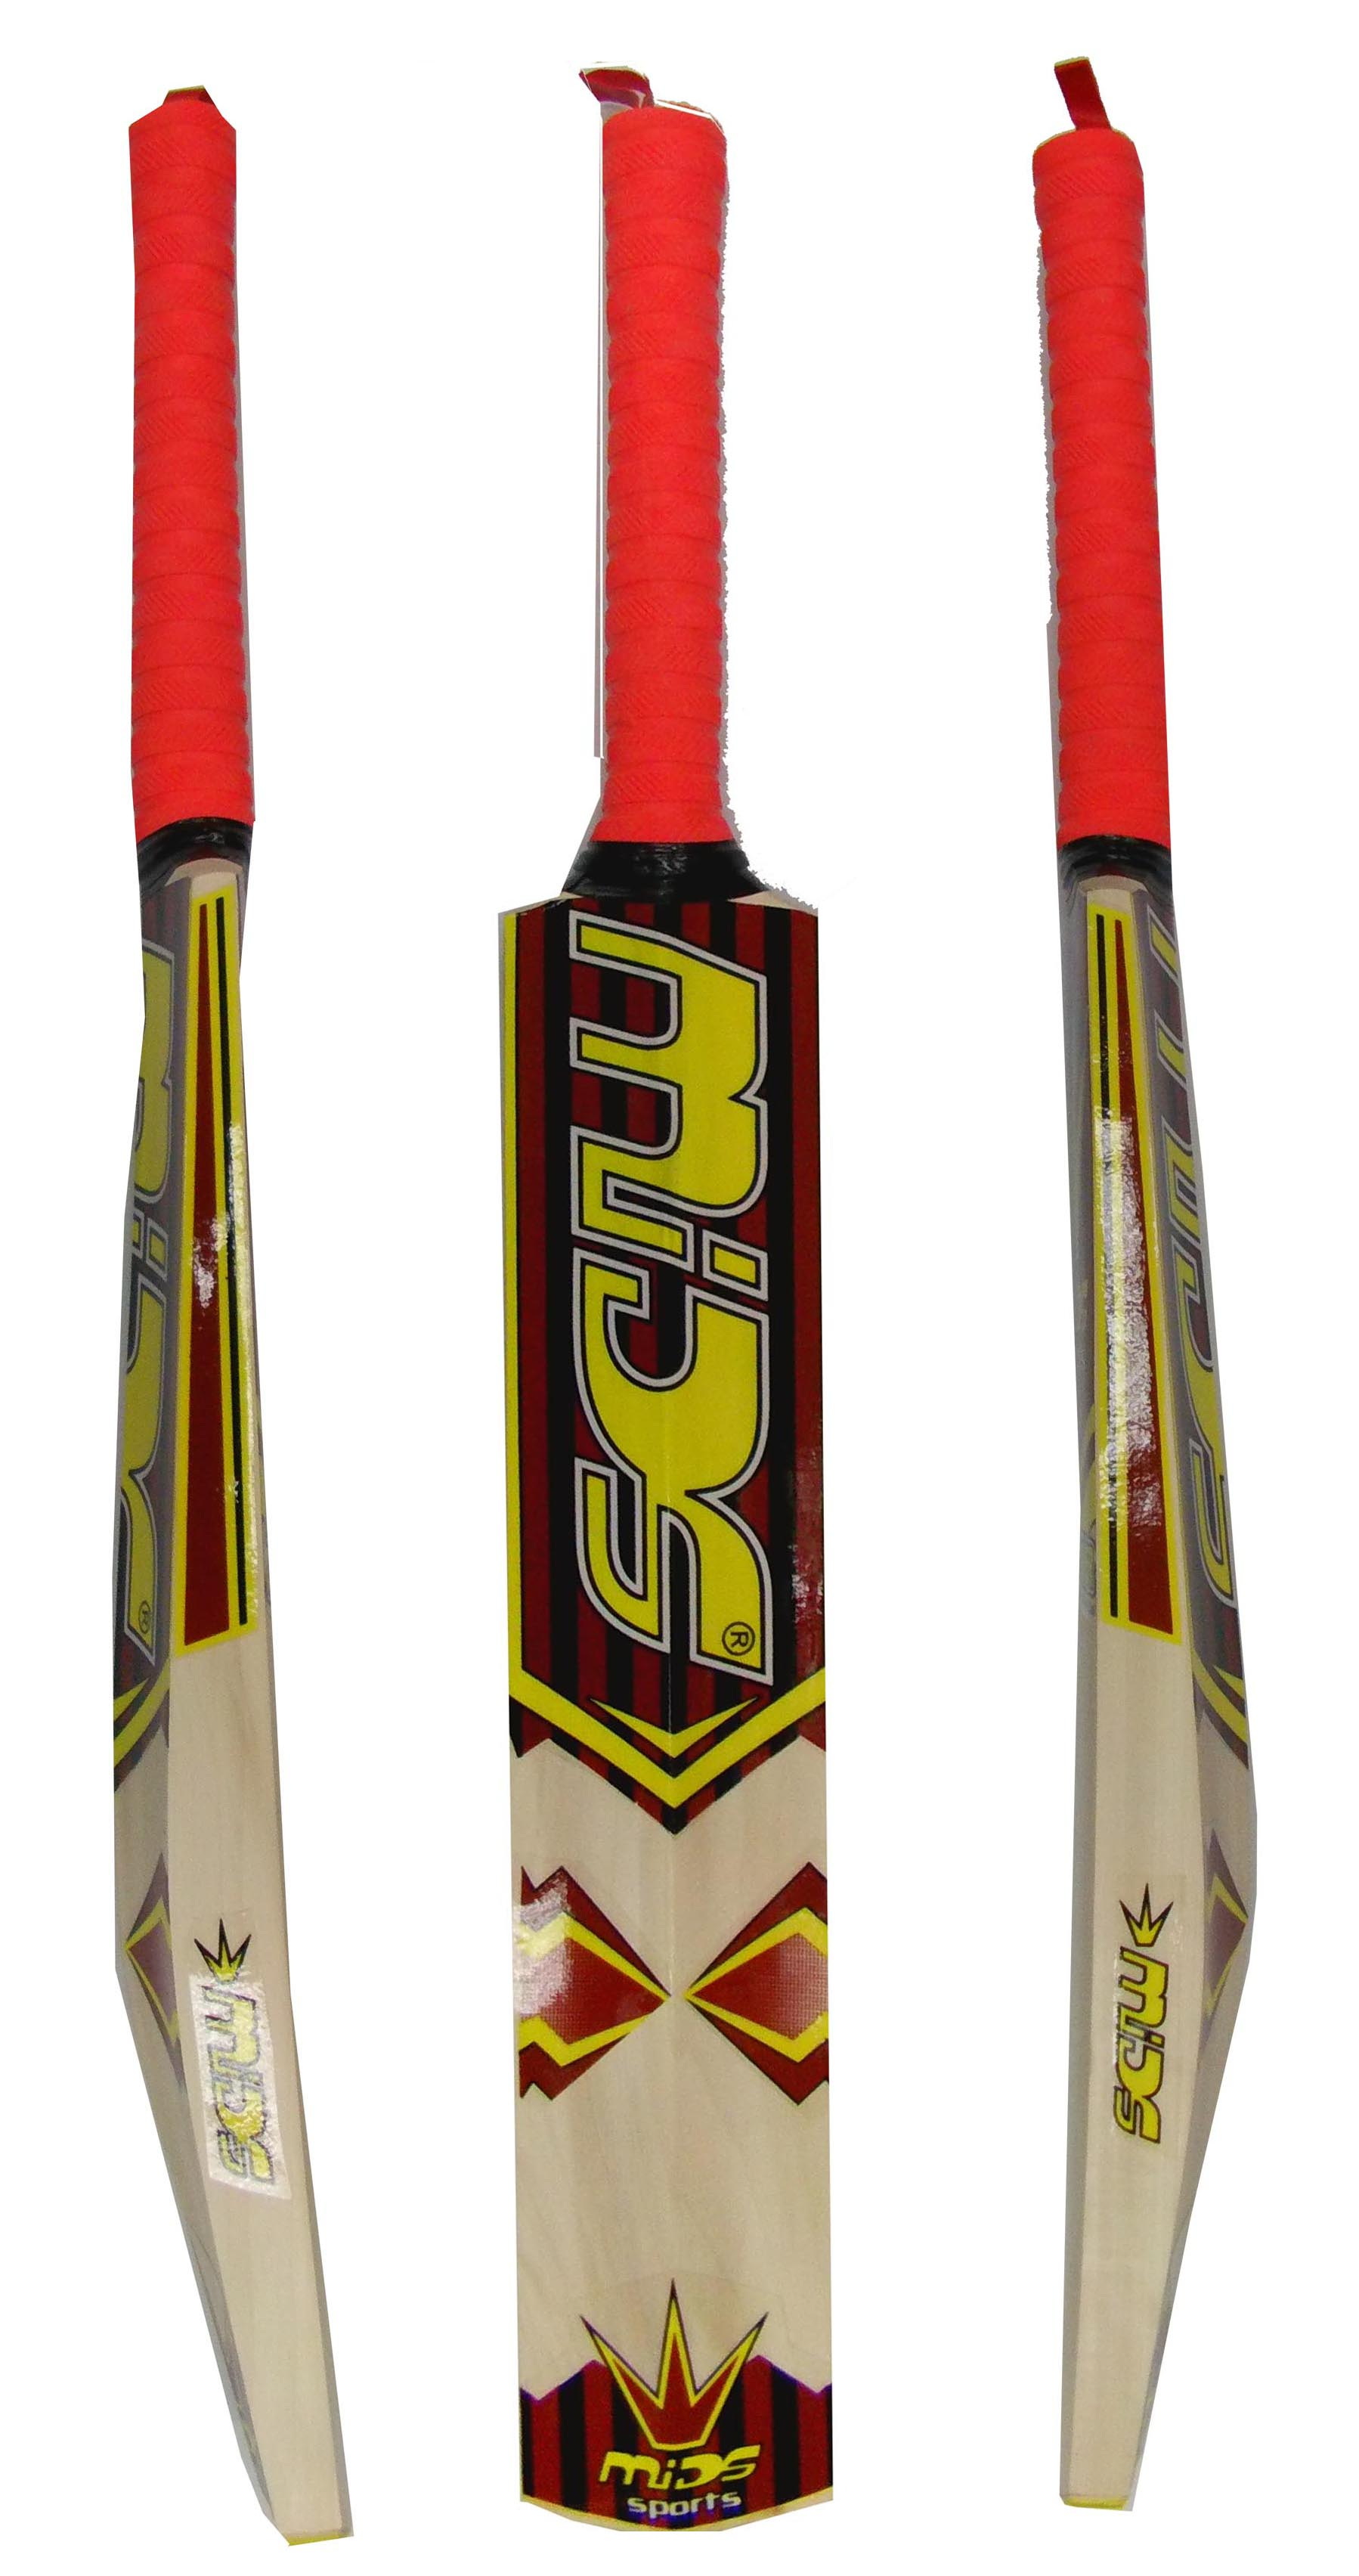 New Mids Z power Cricket Senior Bat Free Shoulder Bag